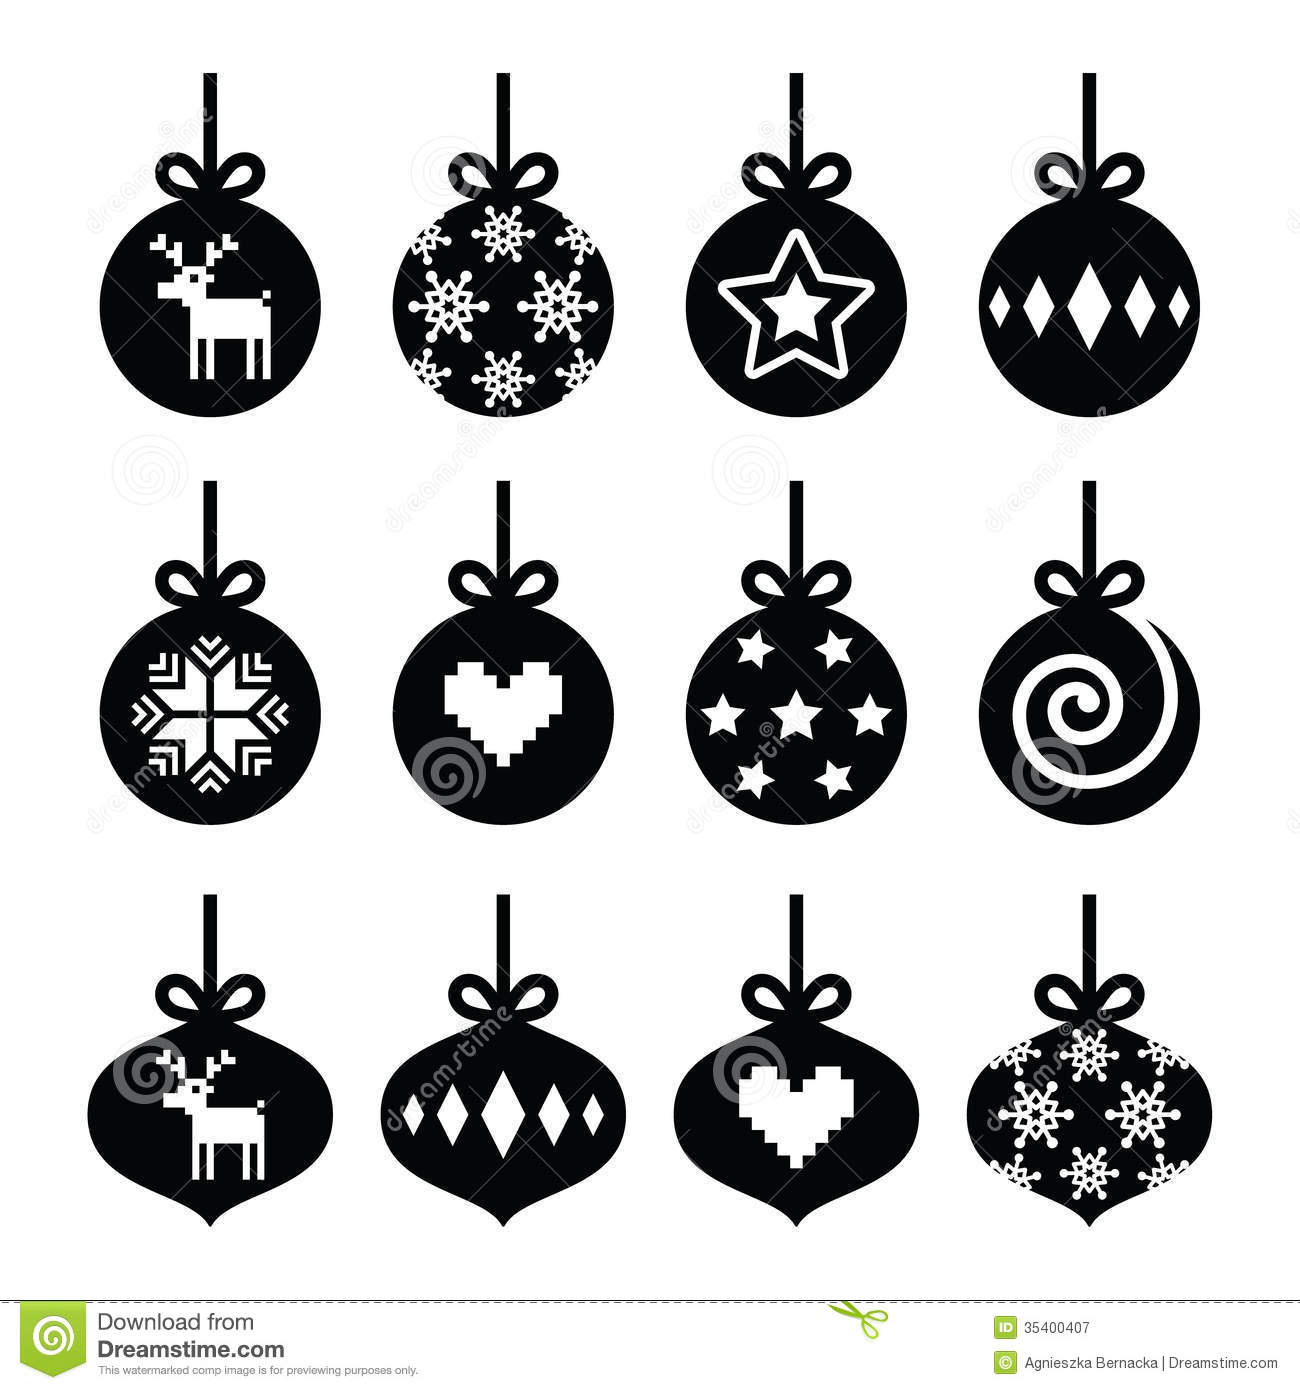 Christmas Clip Art Black and White